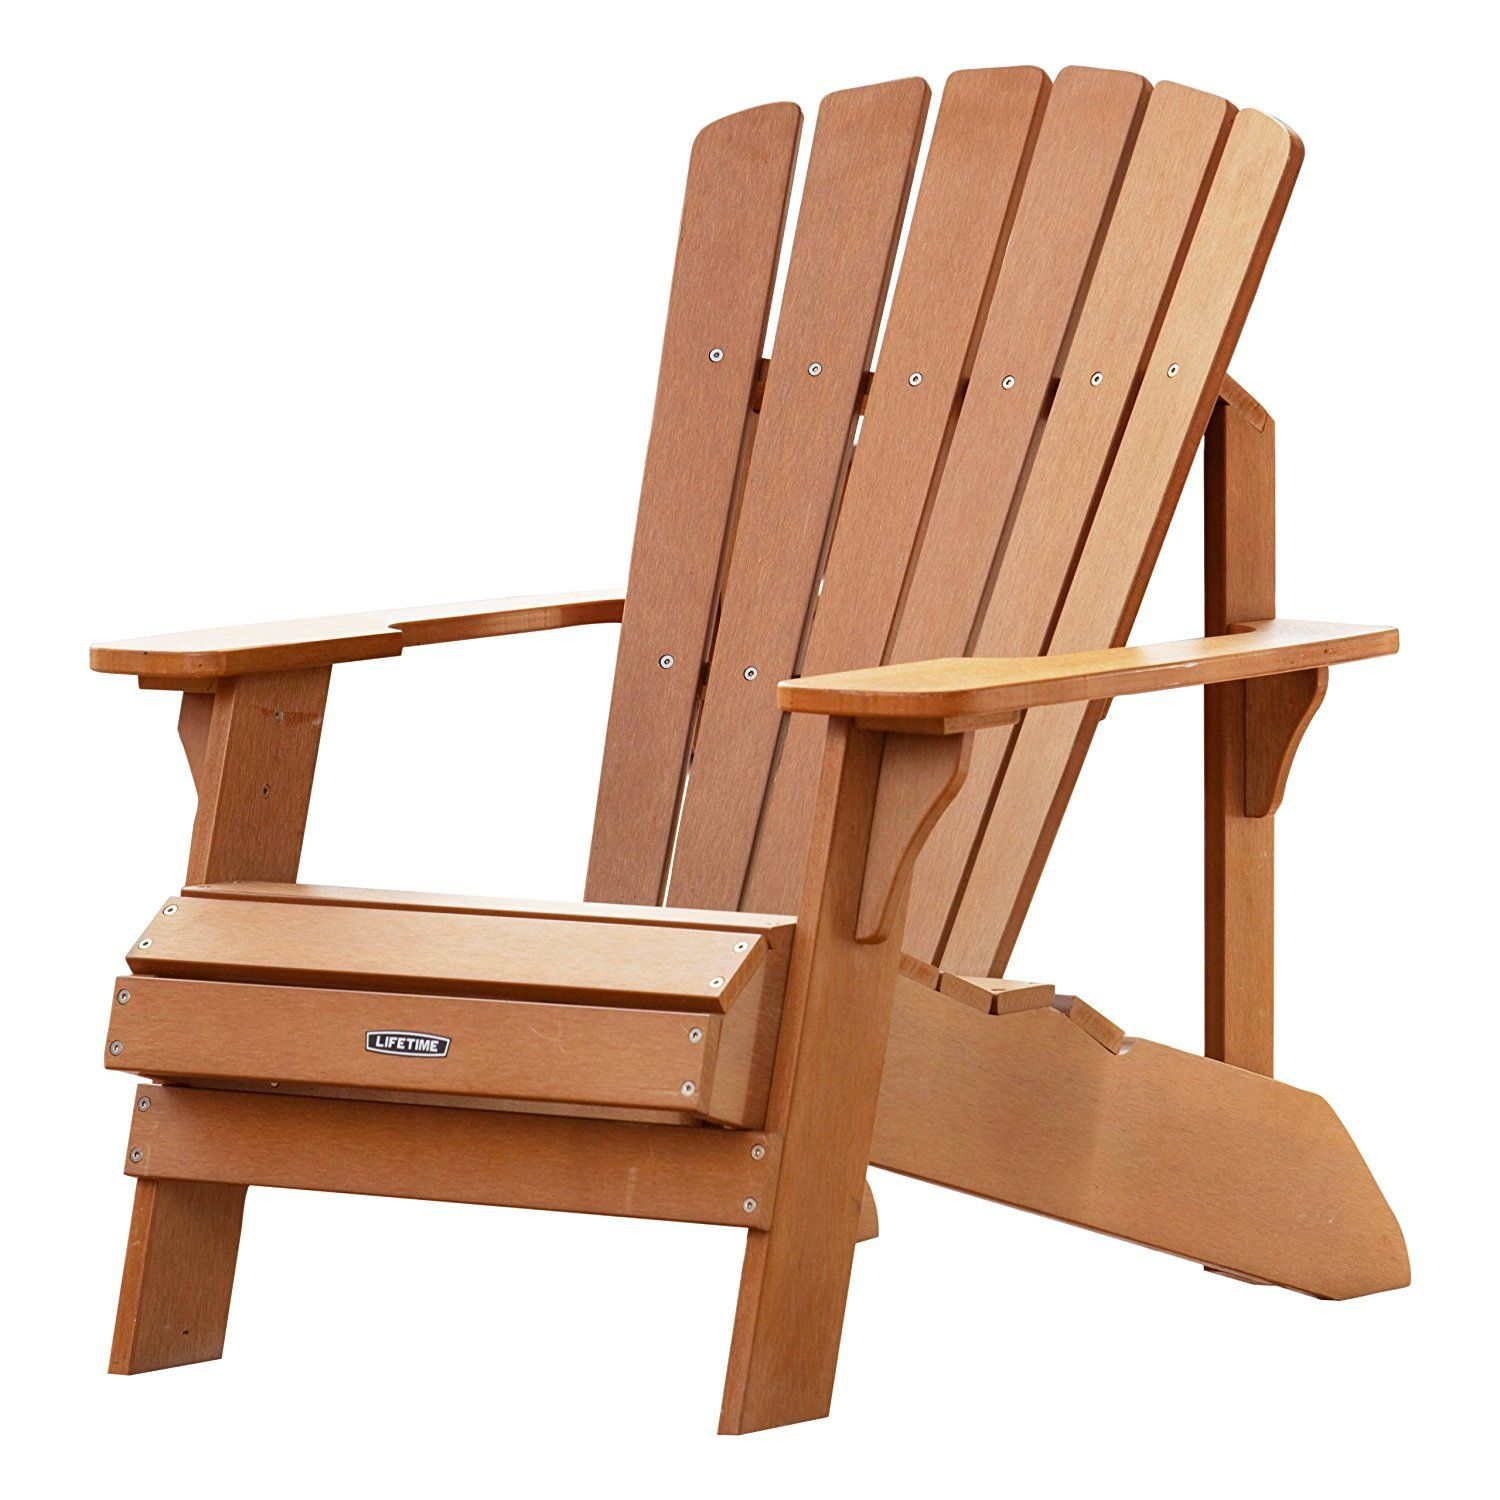 Heavy Duty Adirondack Chairs For Large People For Big And Heavy